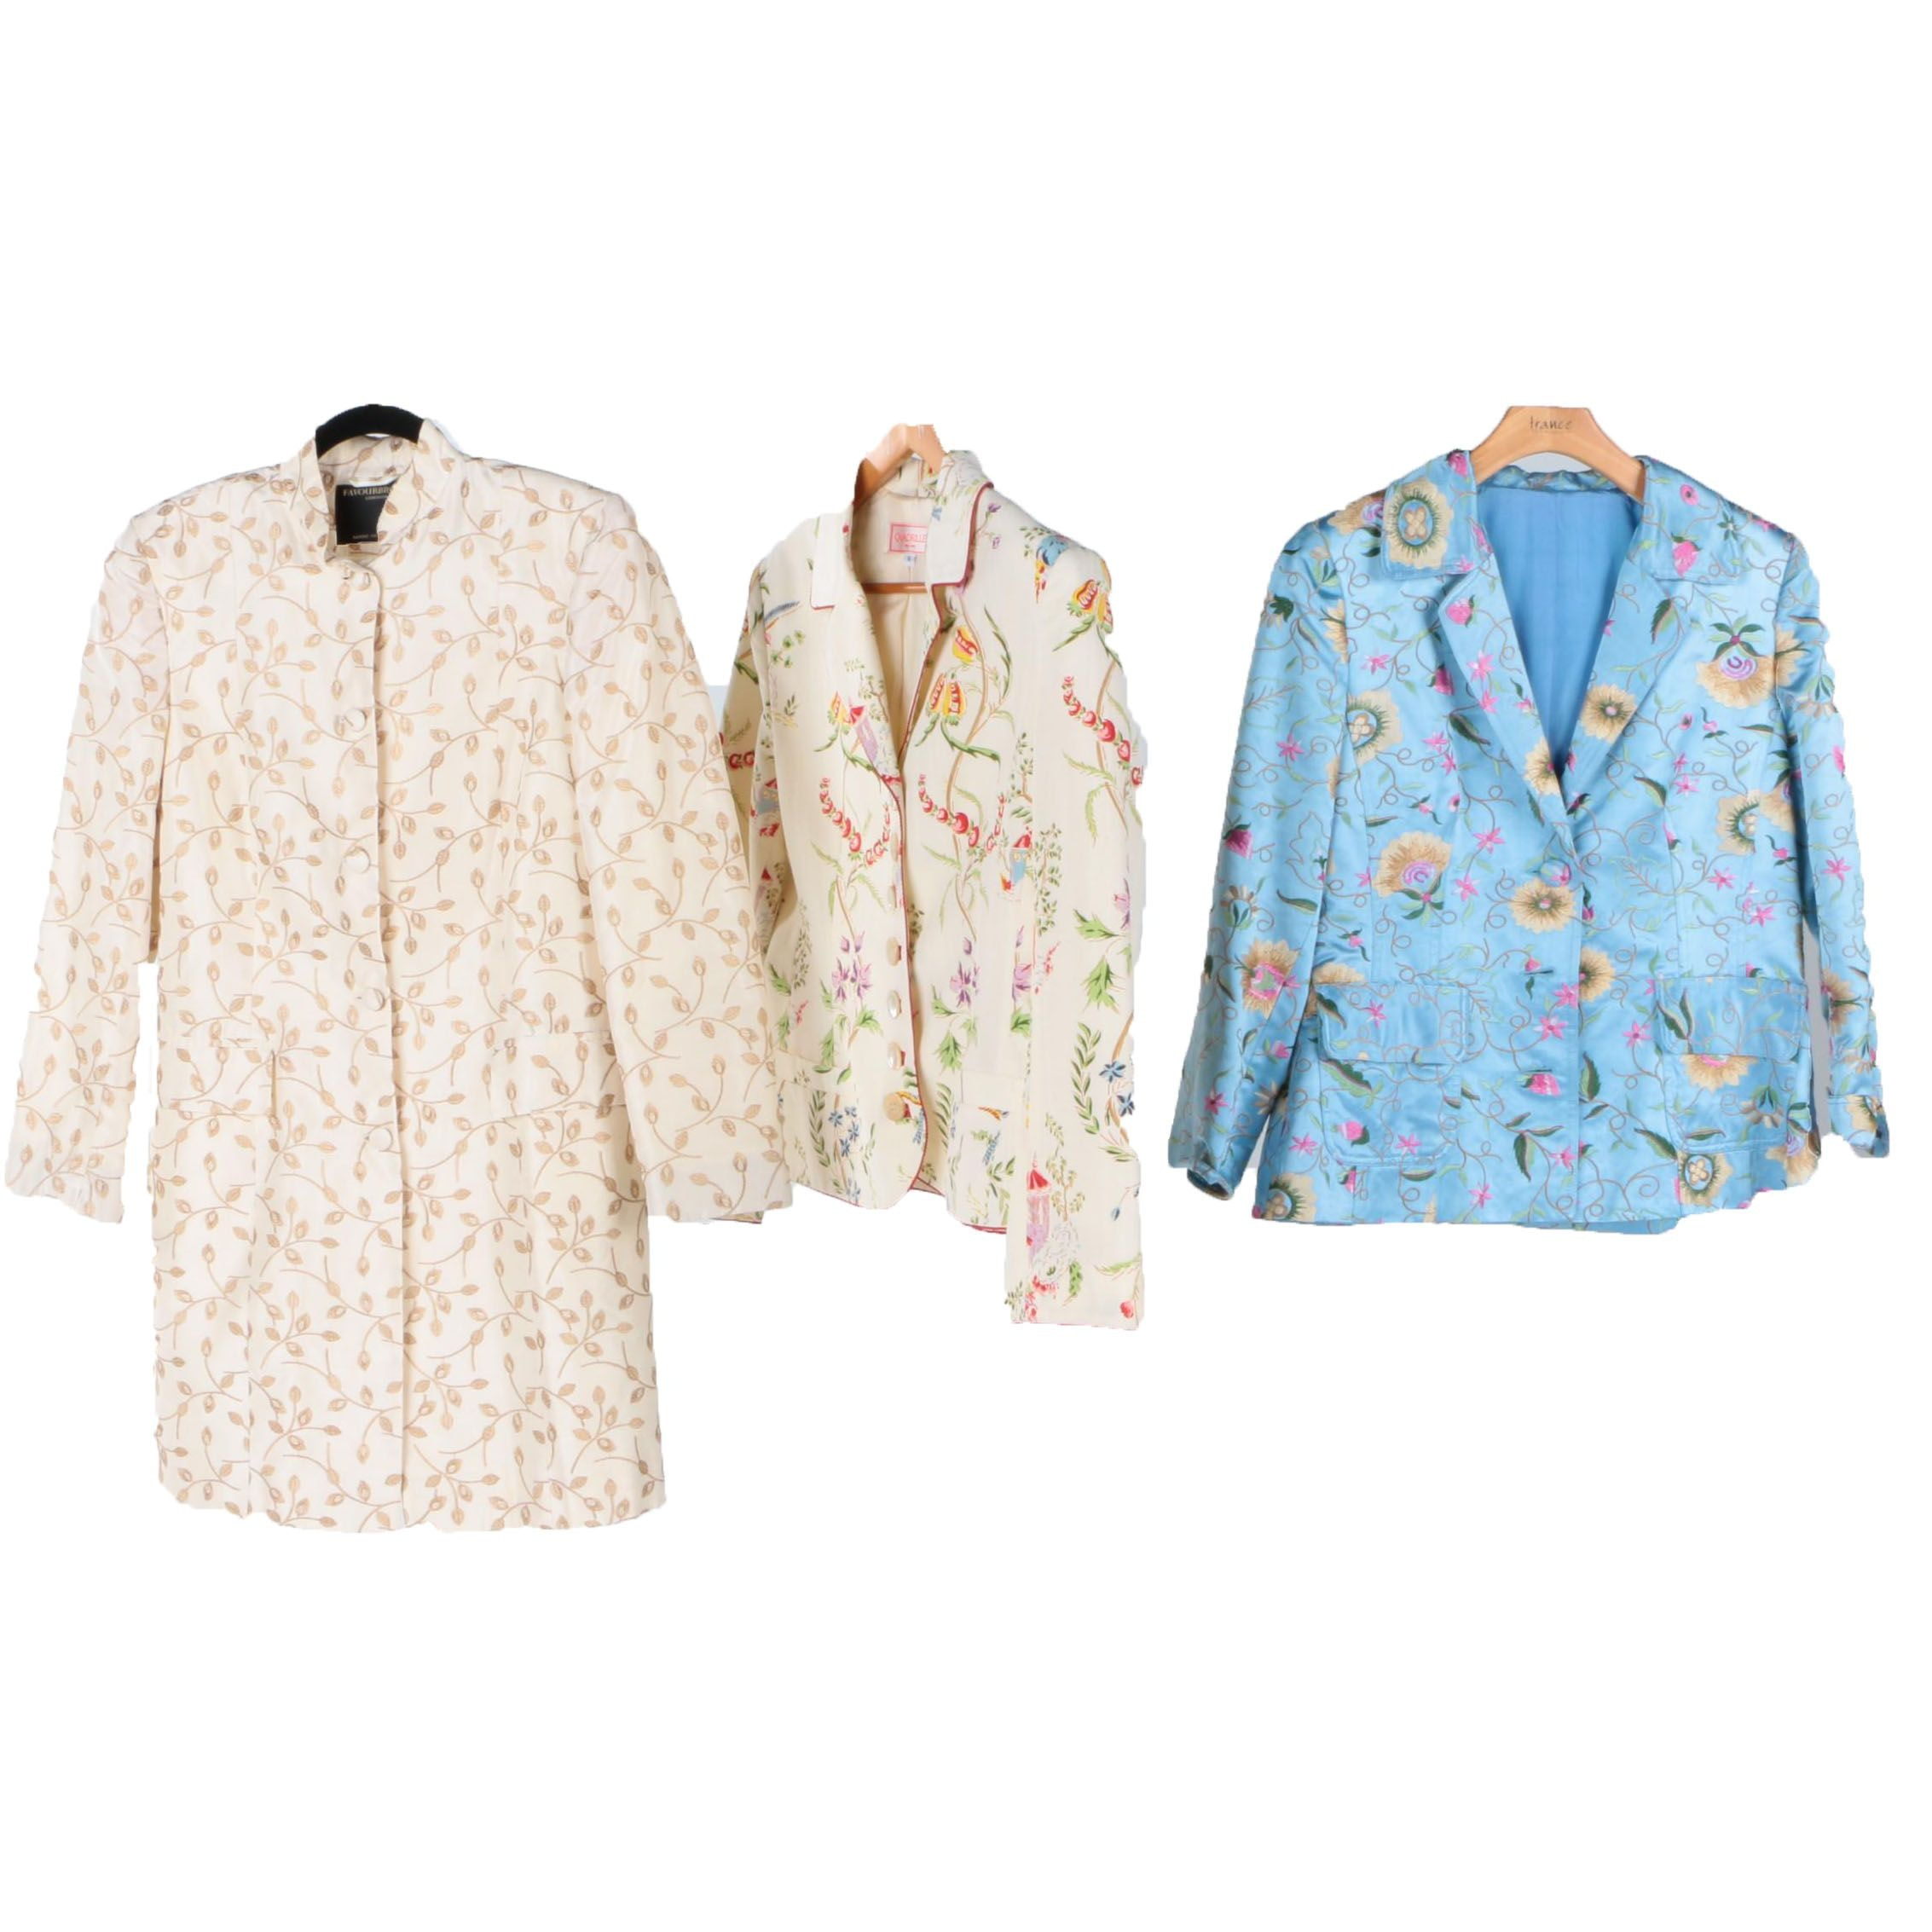 Women's Jacket and Blazers Including Quadrille